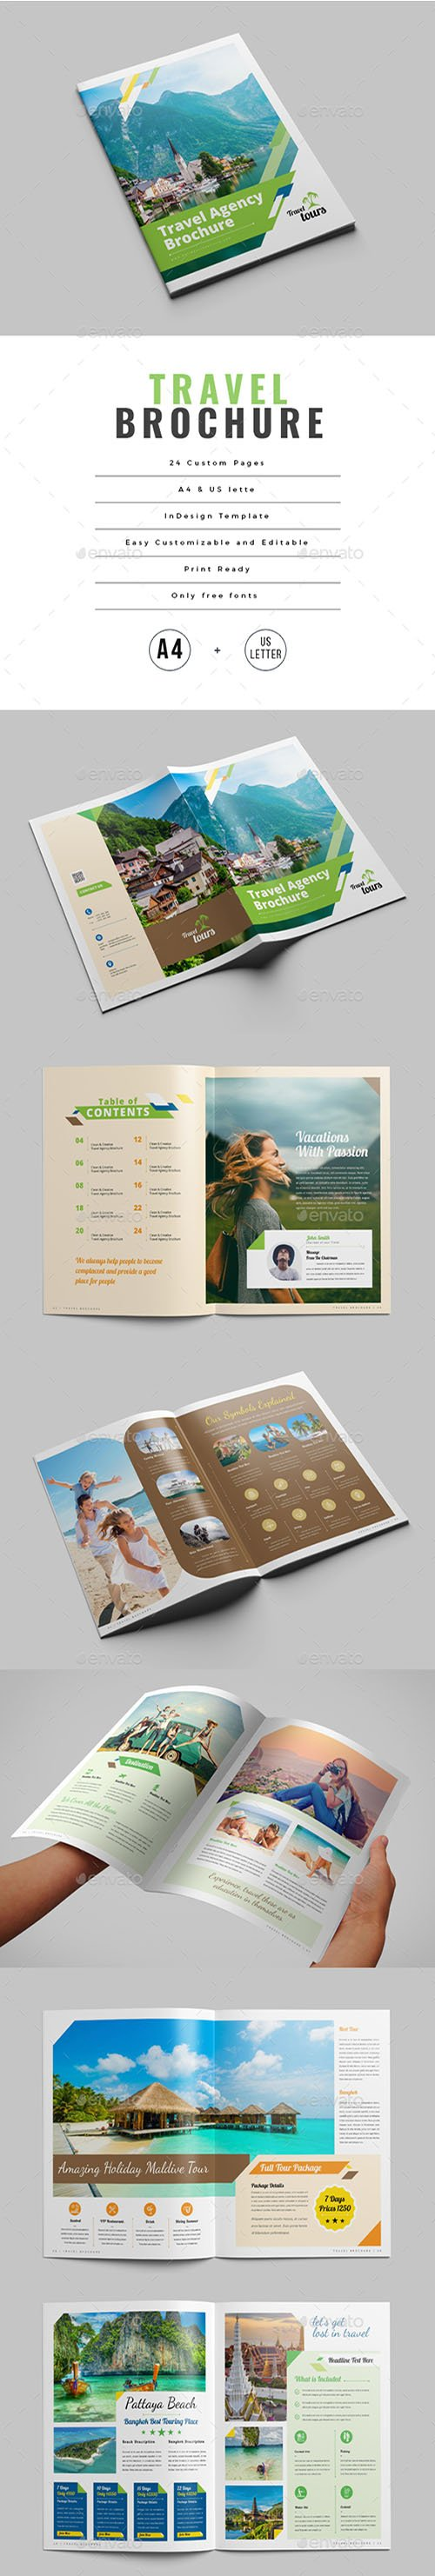 GR - Travel Brochure 22595680